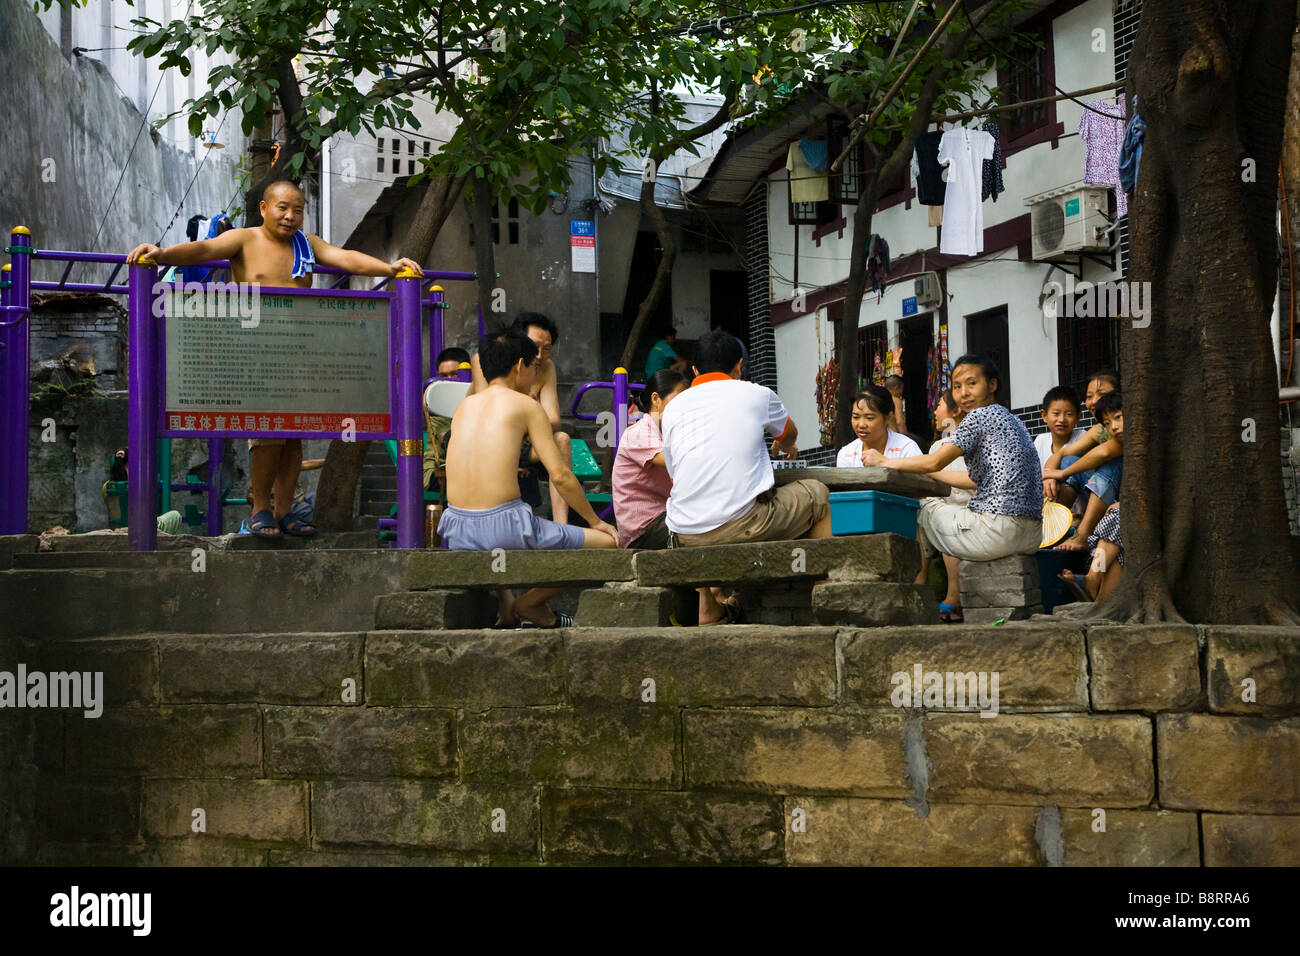 Community gathering in the old part of Chongqing City, southwestern China's boomtown. Stock Photo